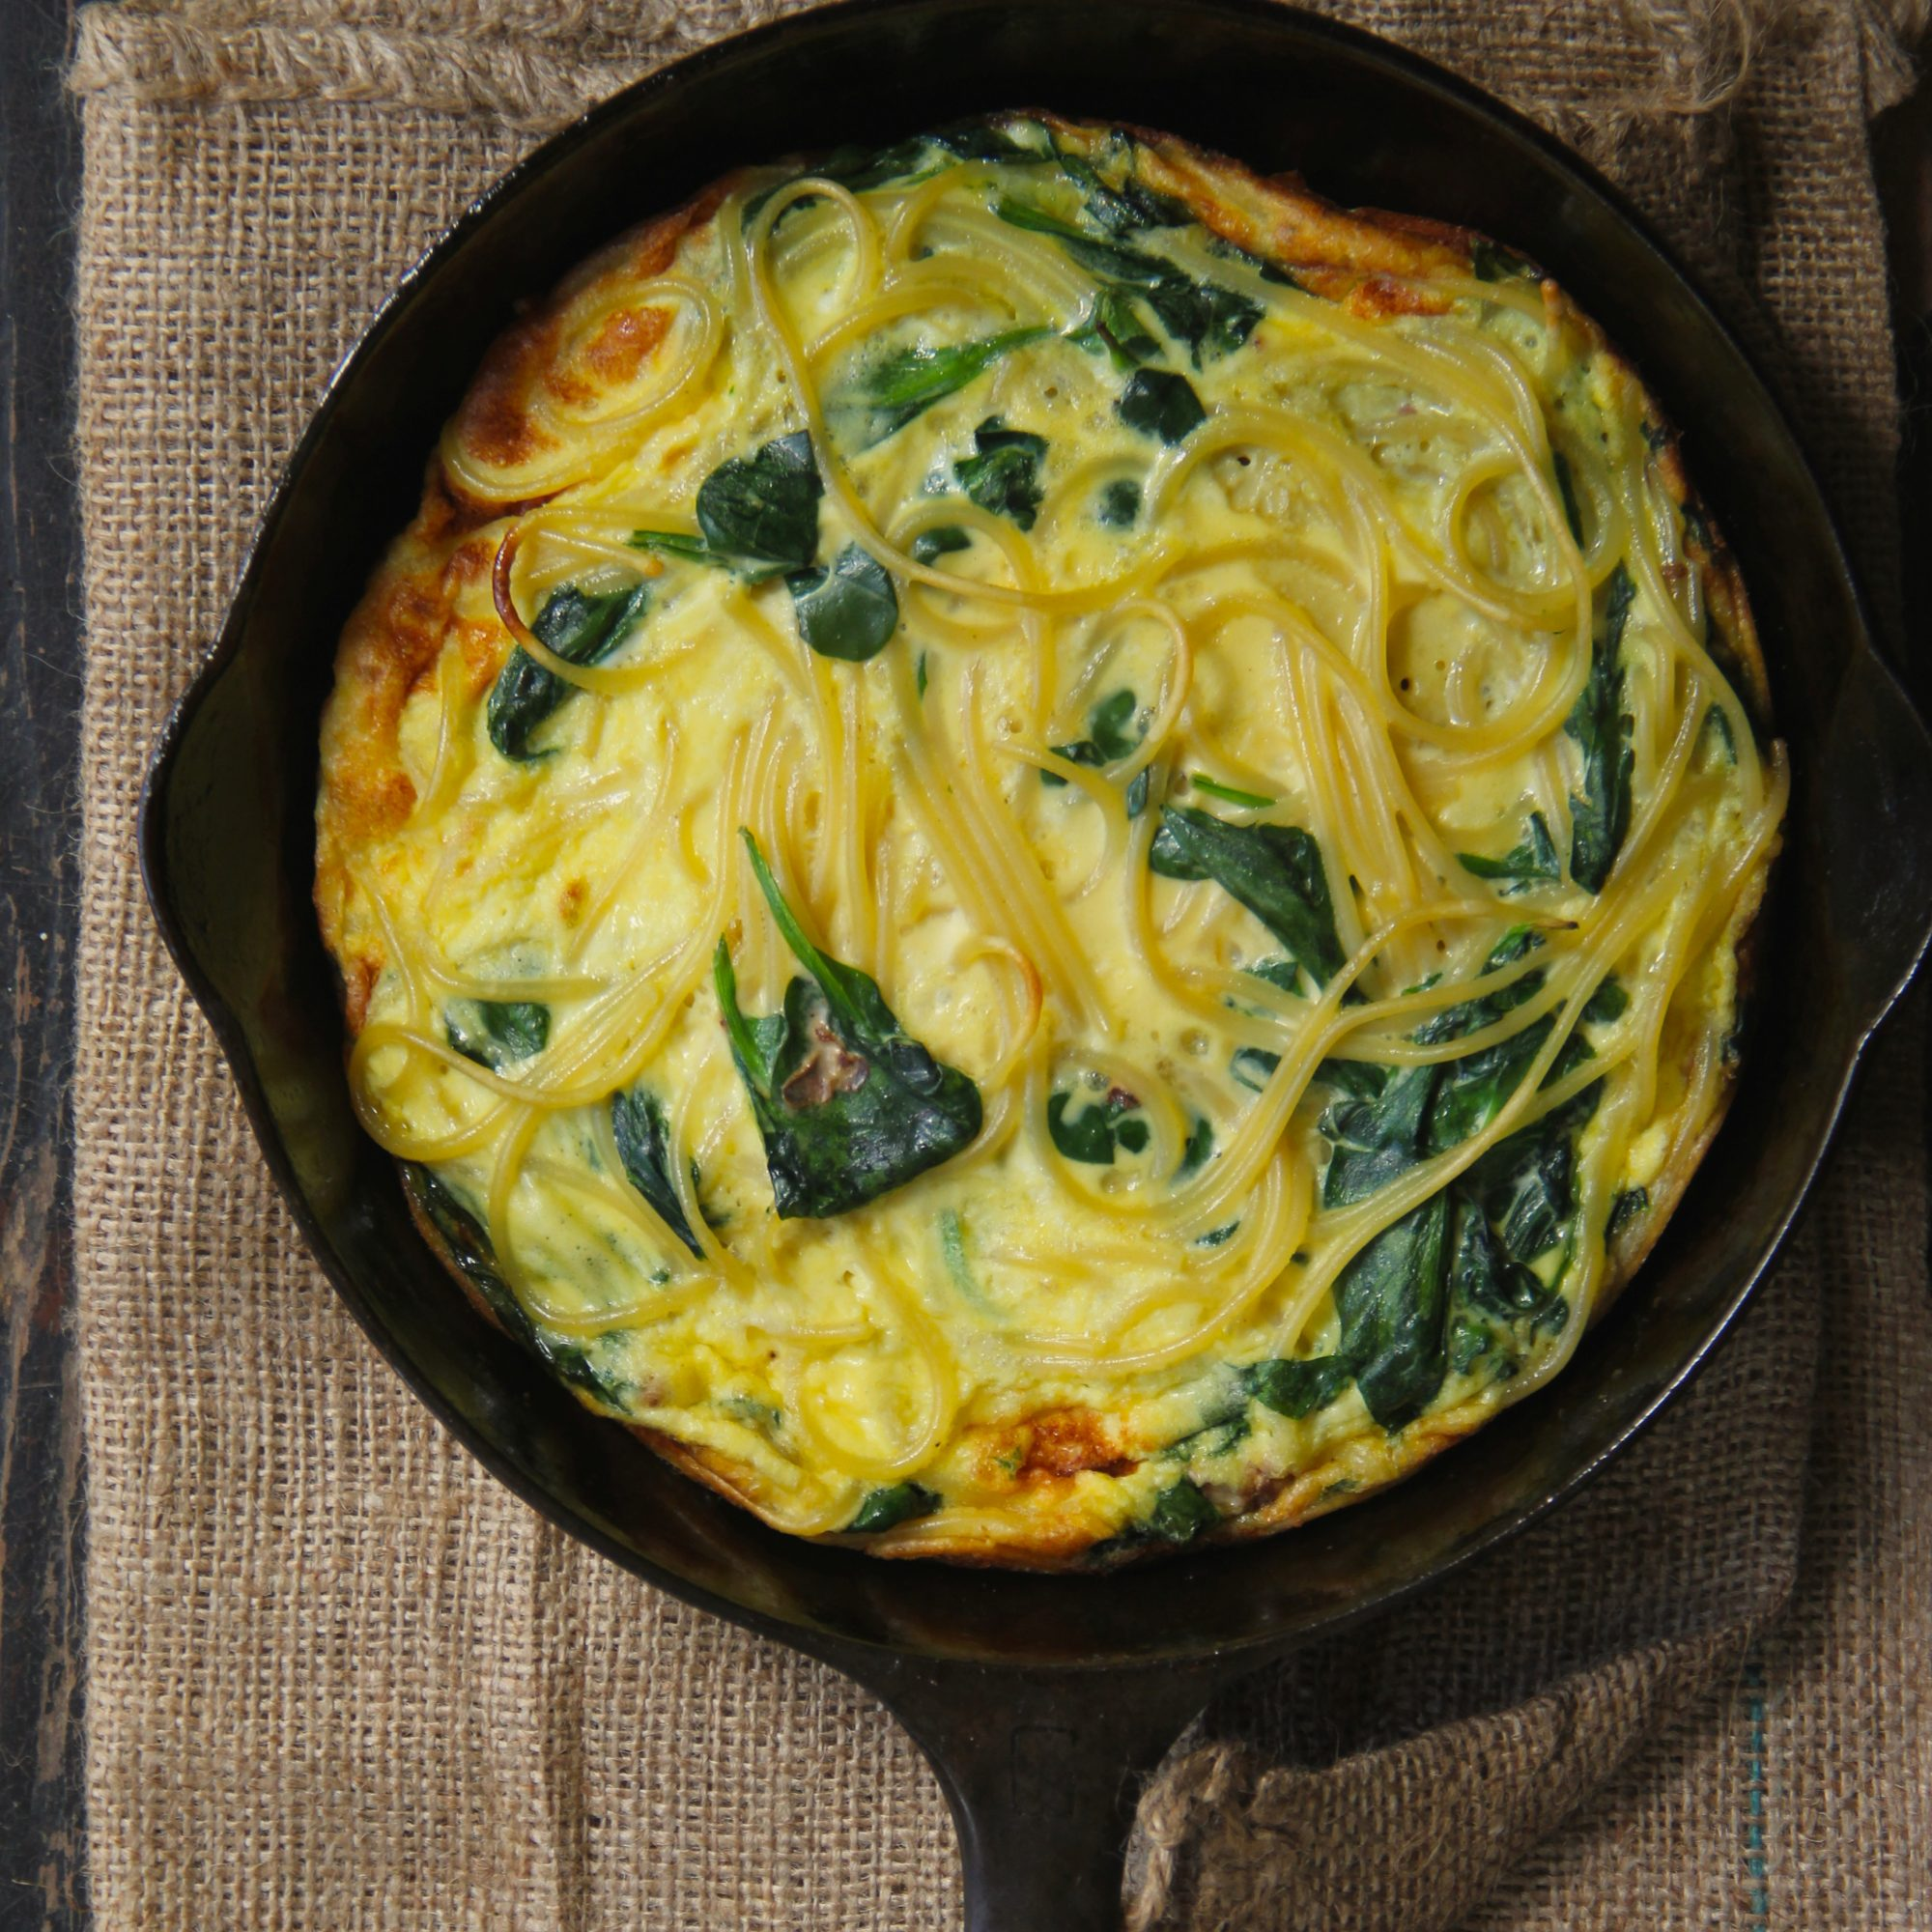 2014-r-xl-spaghetti-and-spinach-omelette.jpg